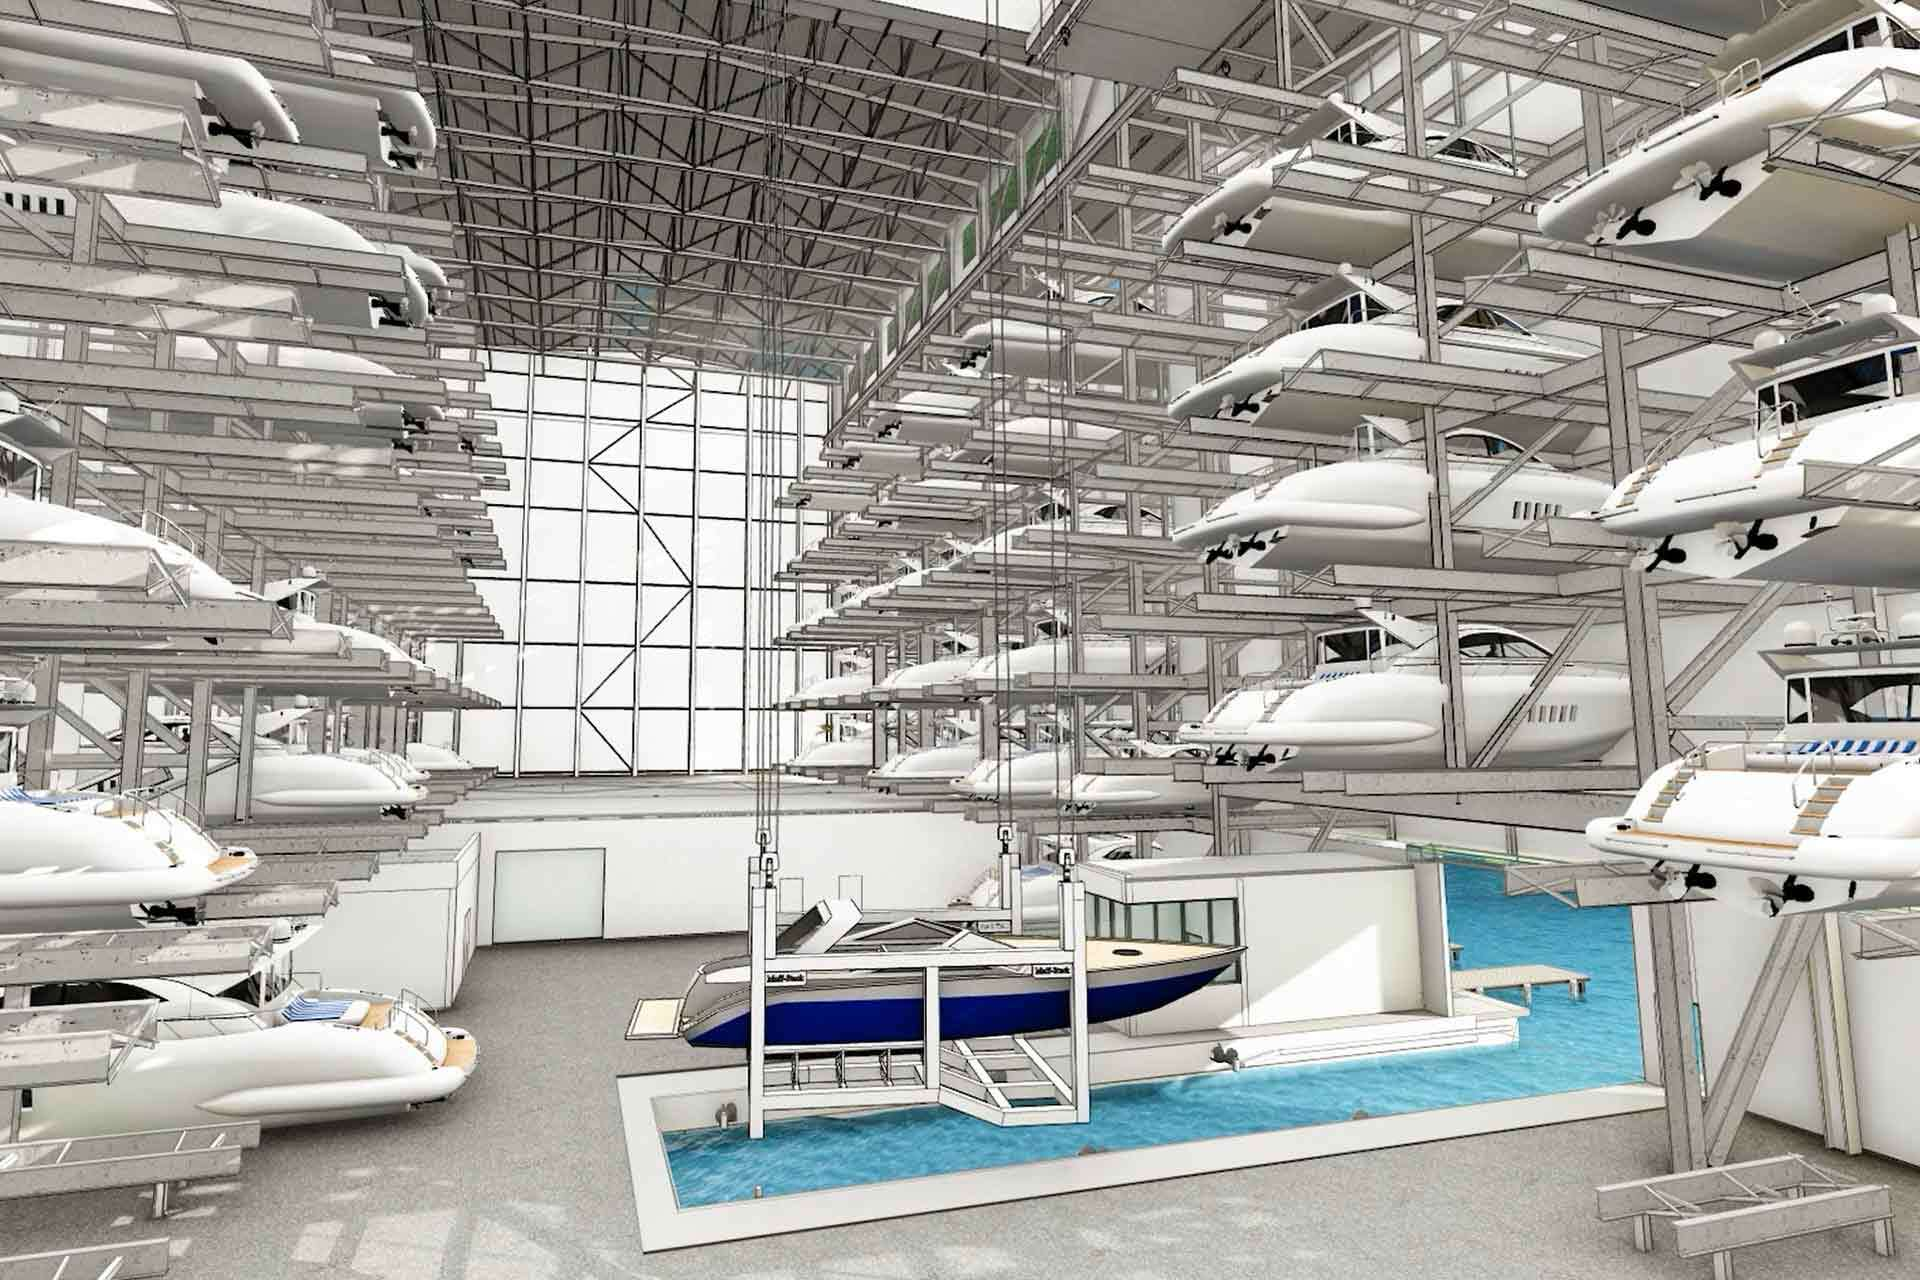 F3 Marina Fort Lauderdale offers fully-automated, indoor boat storage for boats up to 46 feet in overall length, 13-foot beams, up to 17 feet in height and hold a wet weight up to 30,000 pounds.